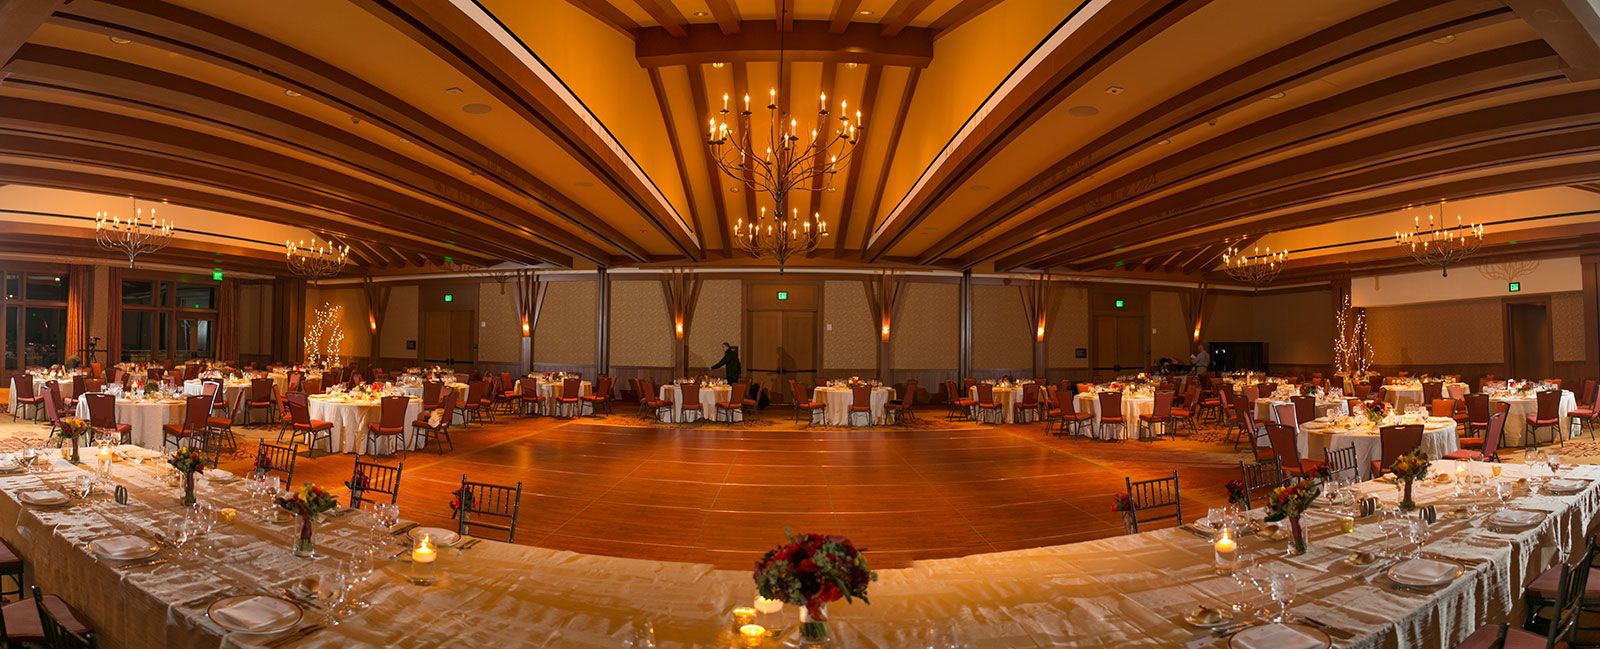 Ritz-Carlton-Lake-Tahoe-wedding-photos-67